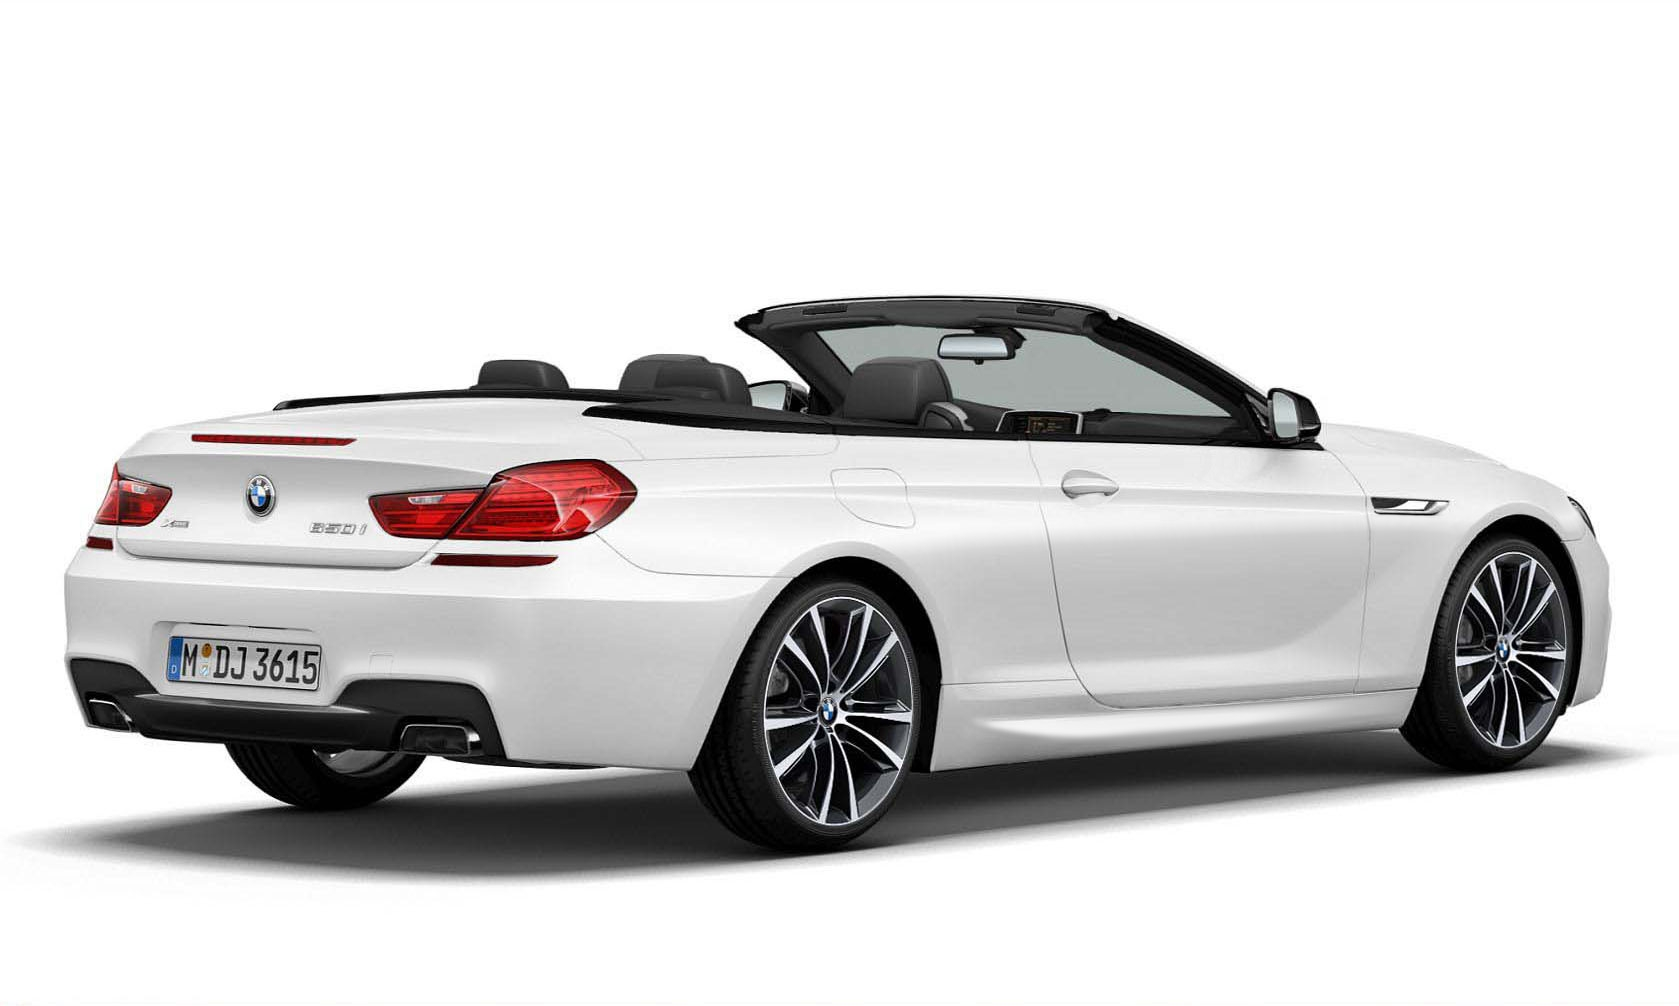 2014 Bmw 650i Frozen Brilliant White Edition Convertible